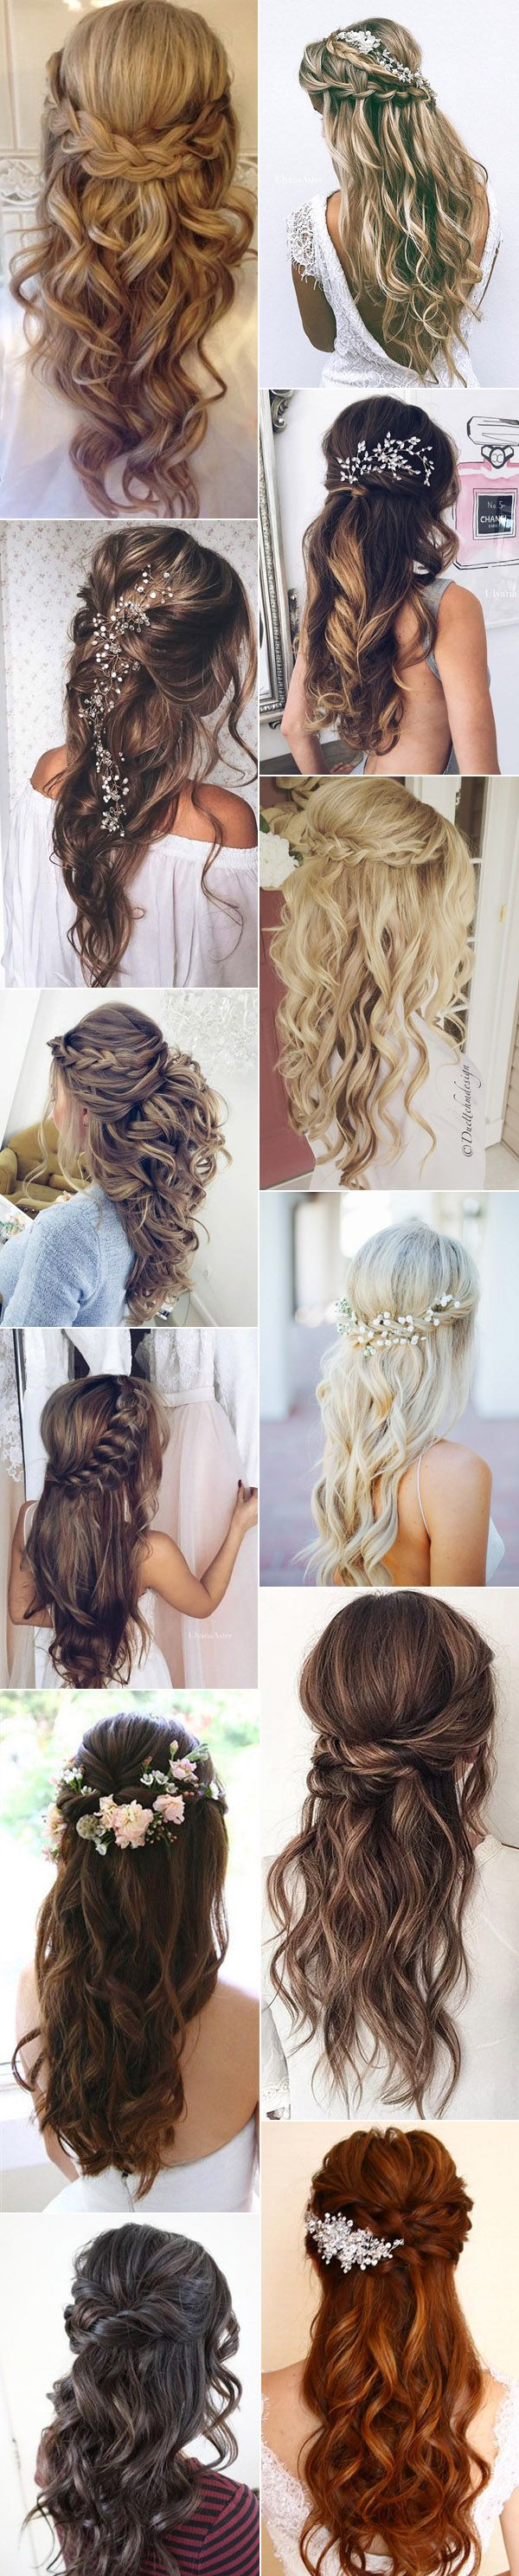 amazing half up half down wedding hairstyle ideas christening